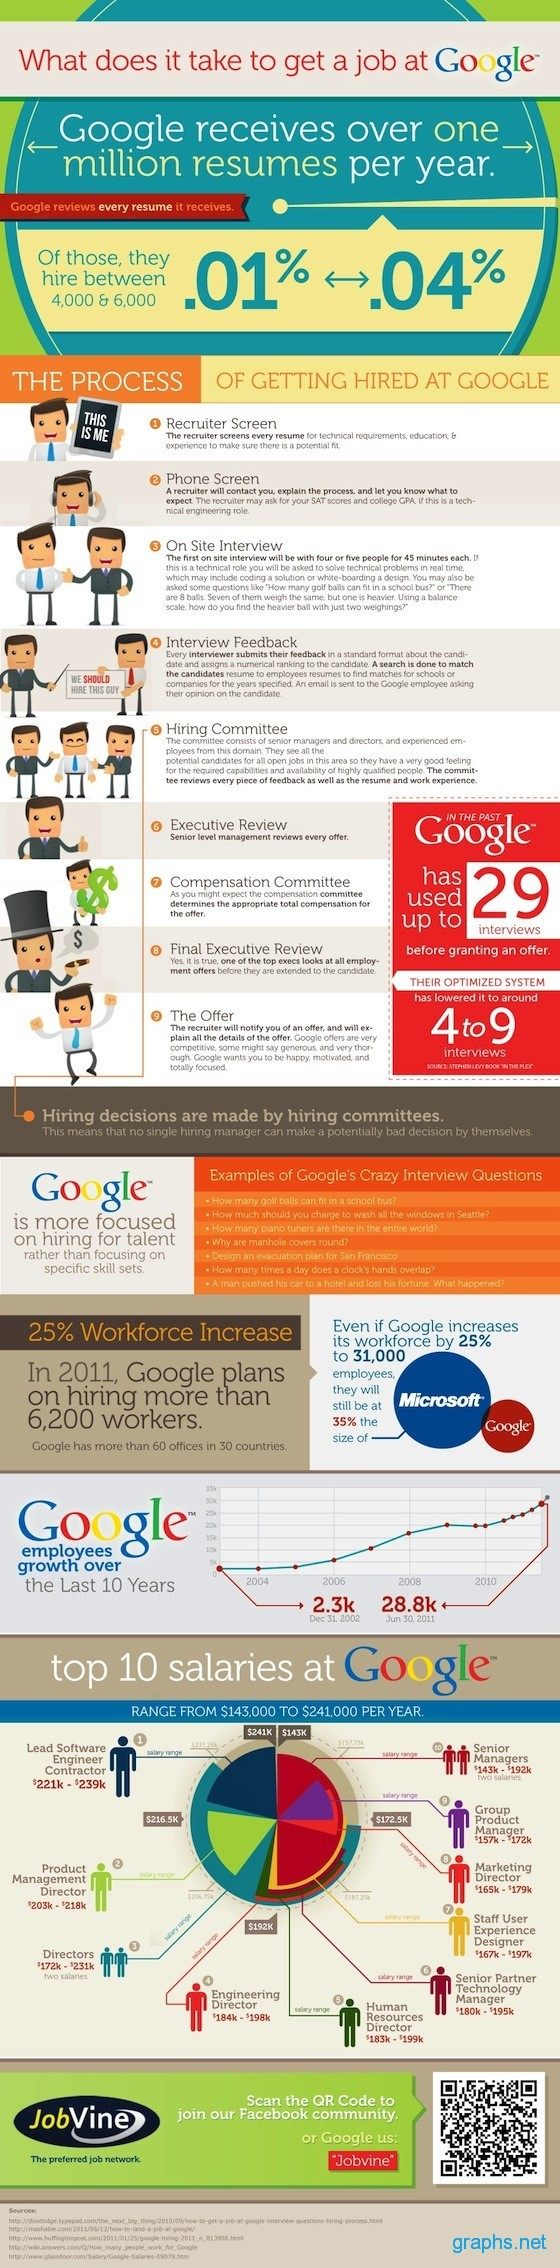 Google Hiring Process and Top Salaries